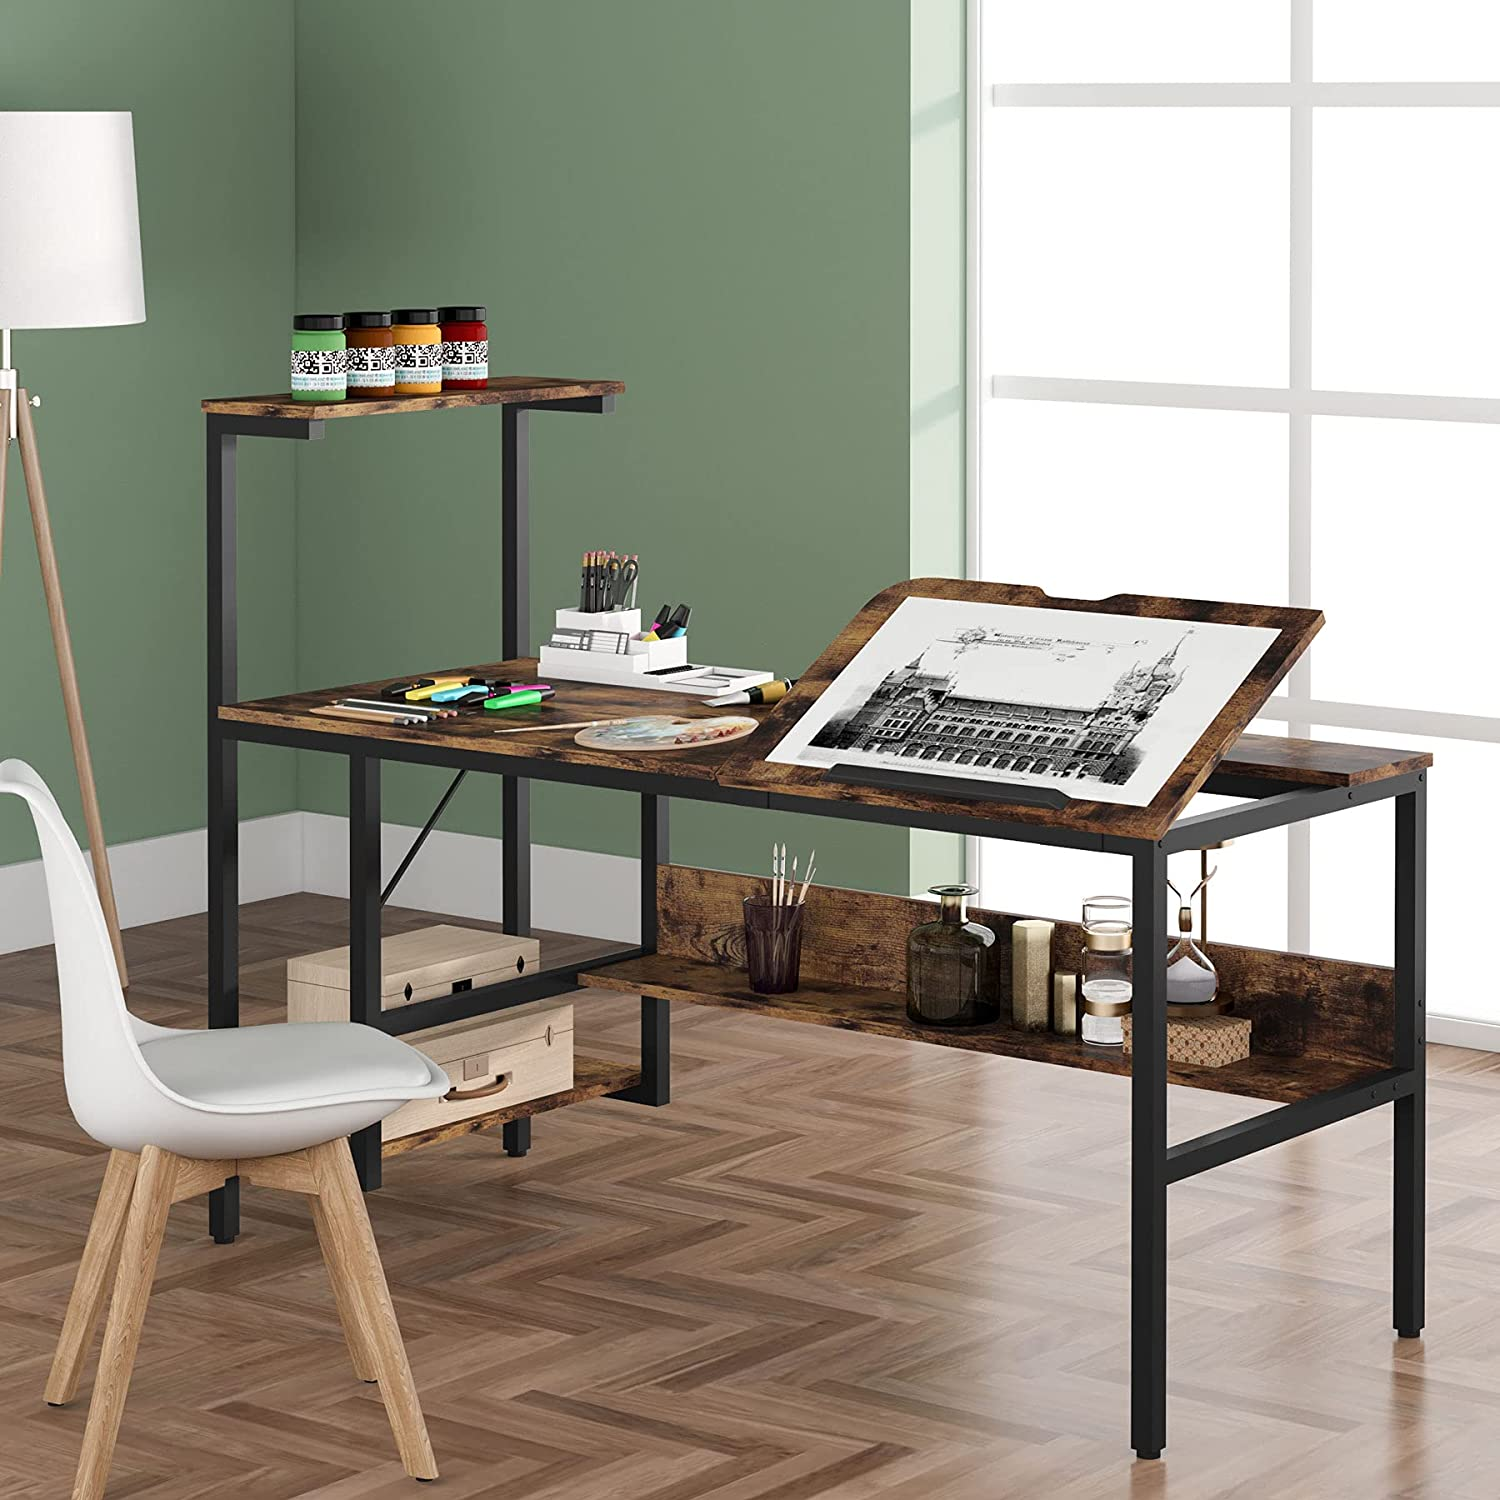 Tribesigns Drafting Max 45% OFF Table with Washington Mall Storage Shelves Inch 55 Drawing